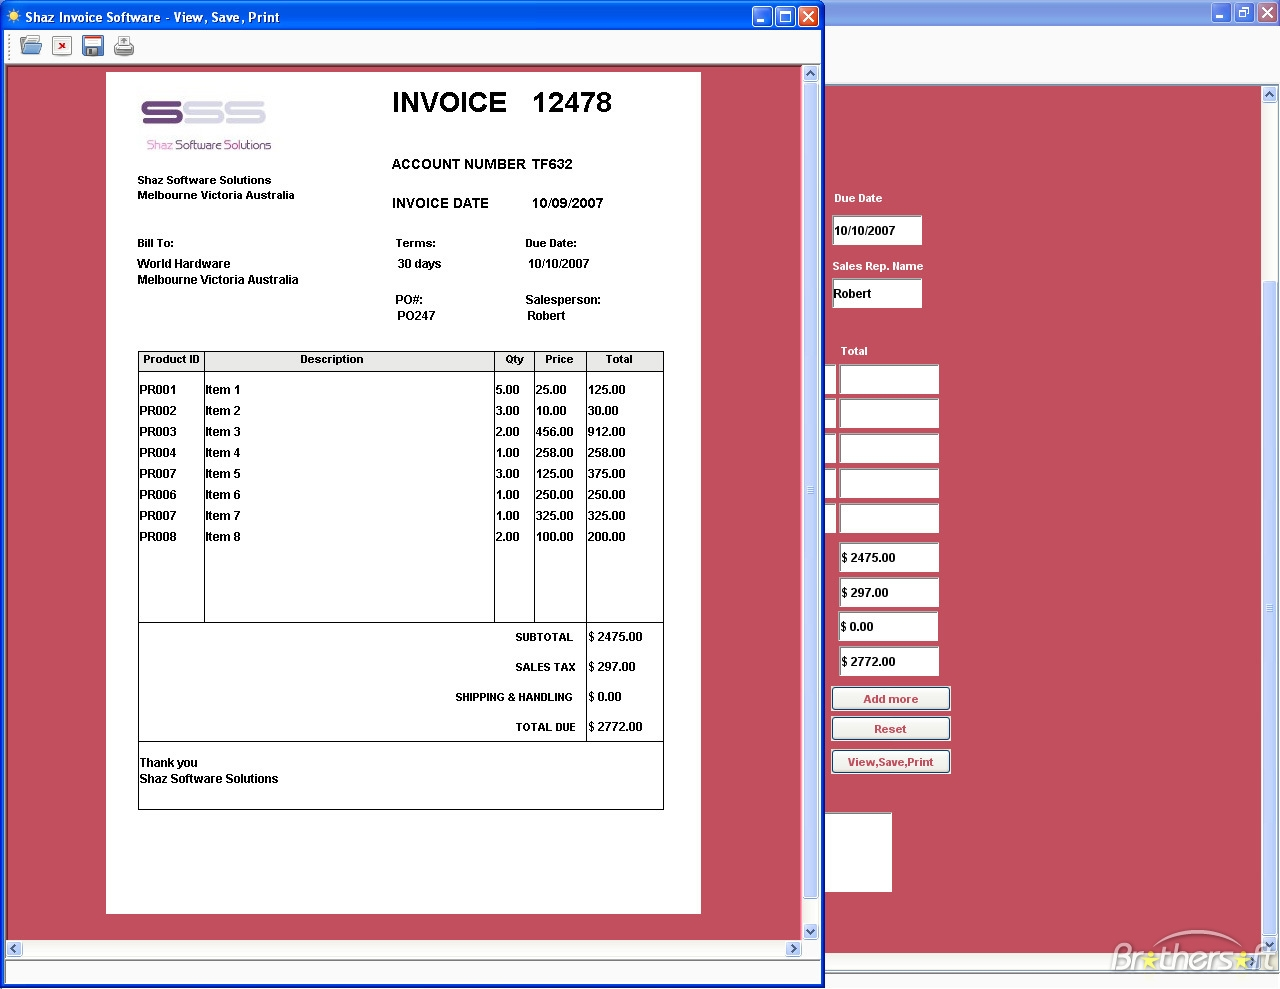 free invoice software download invoice for free denise nicholas sample invoice template free 1280 X 989